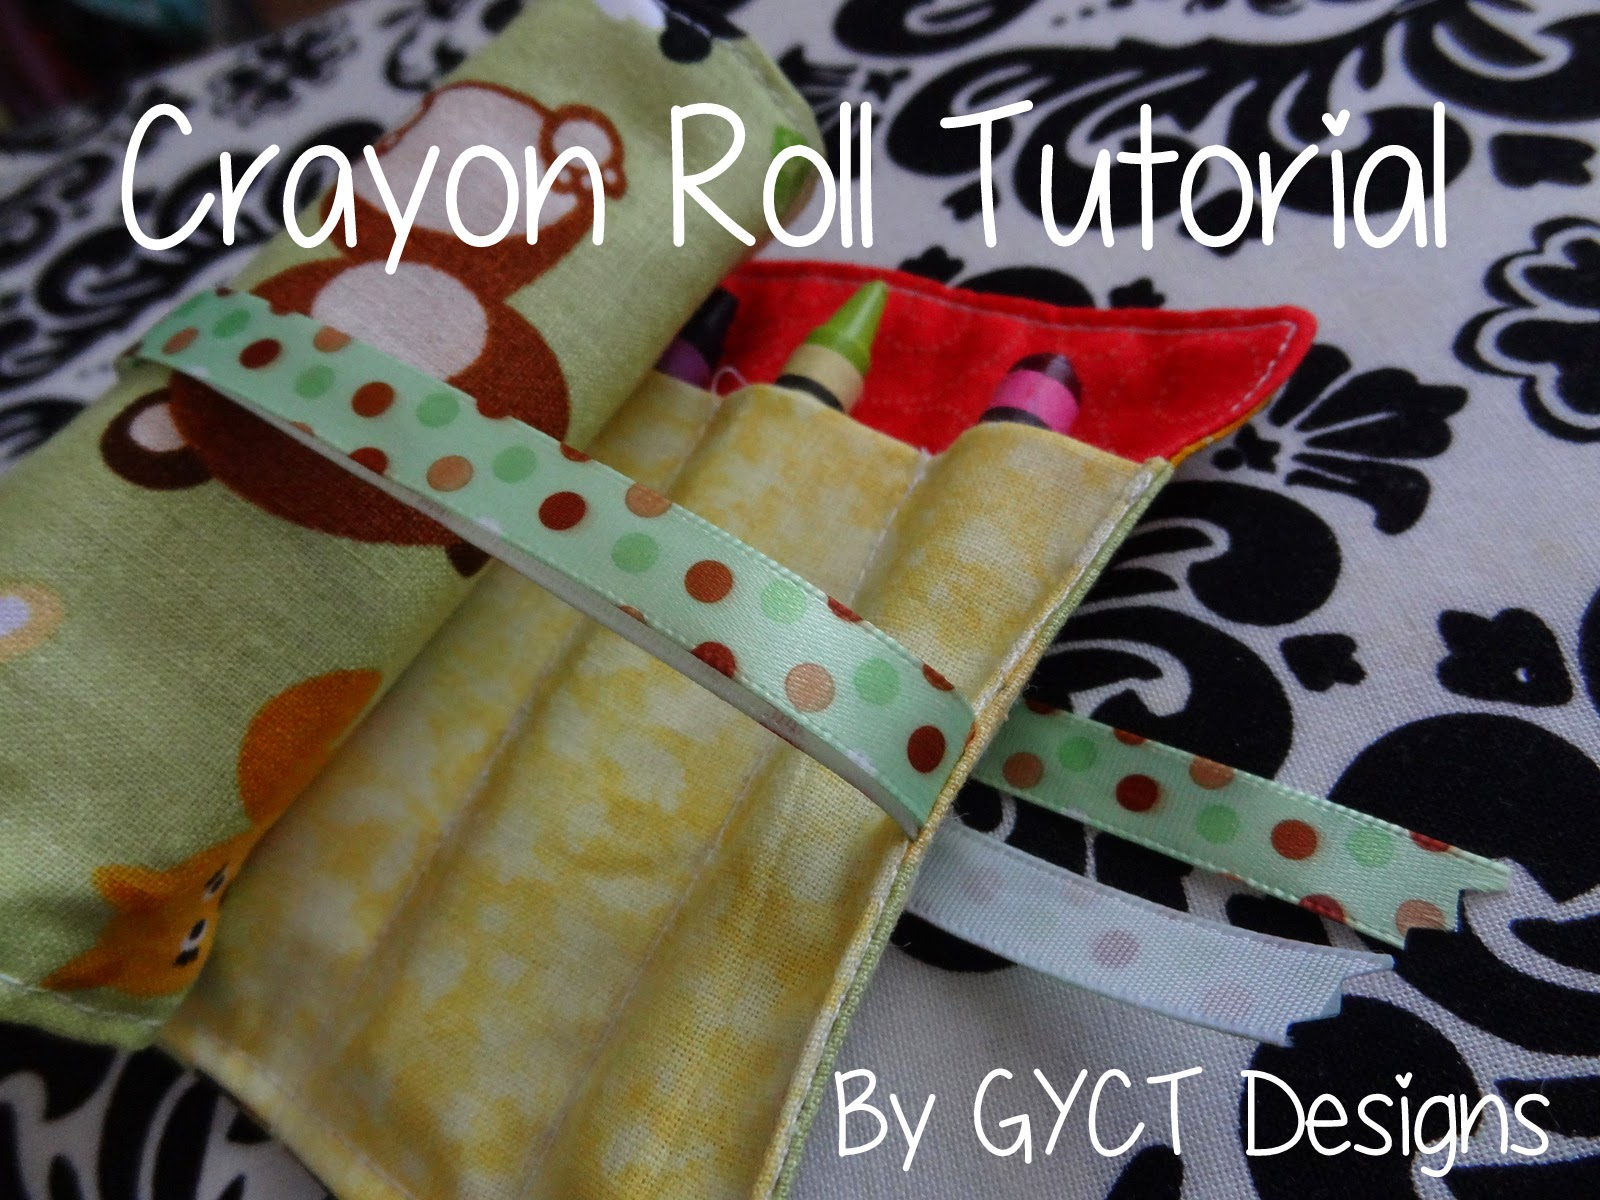 Crayon Roll Tutorial and Free Pattern by GYCT